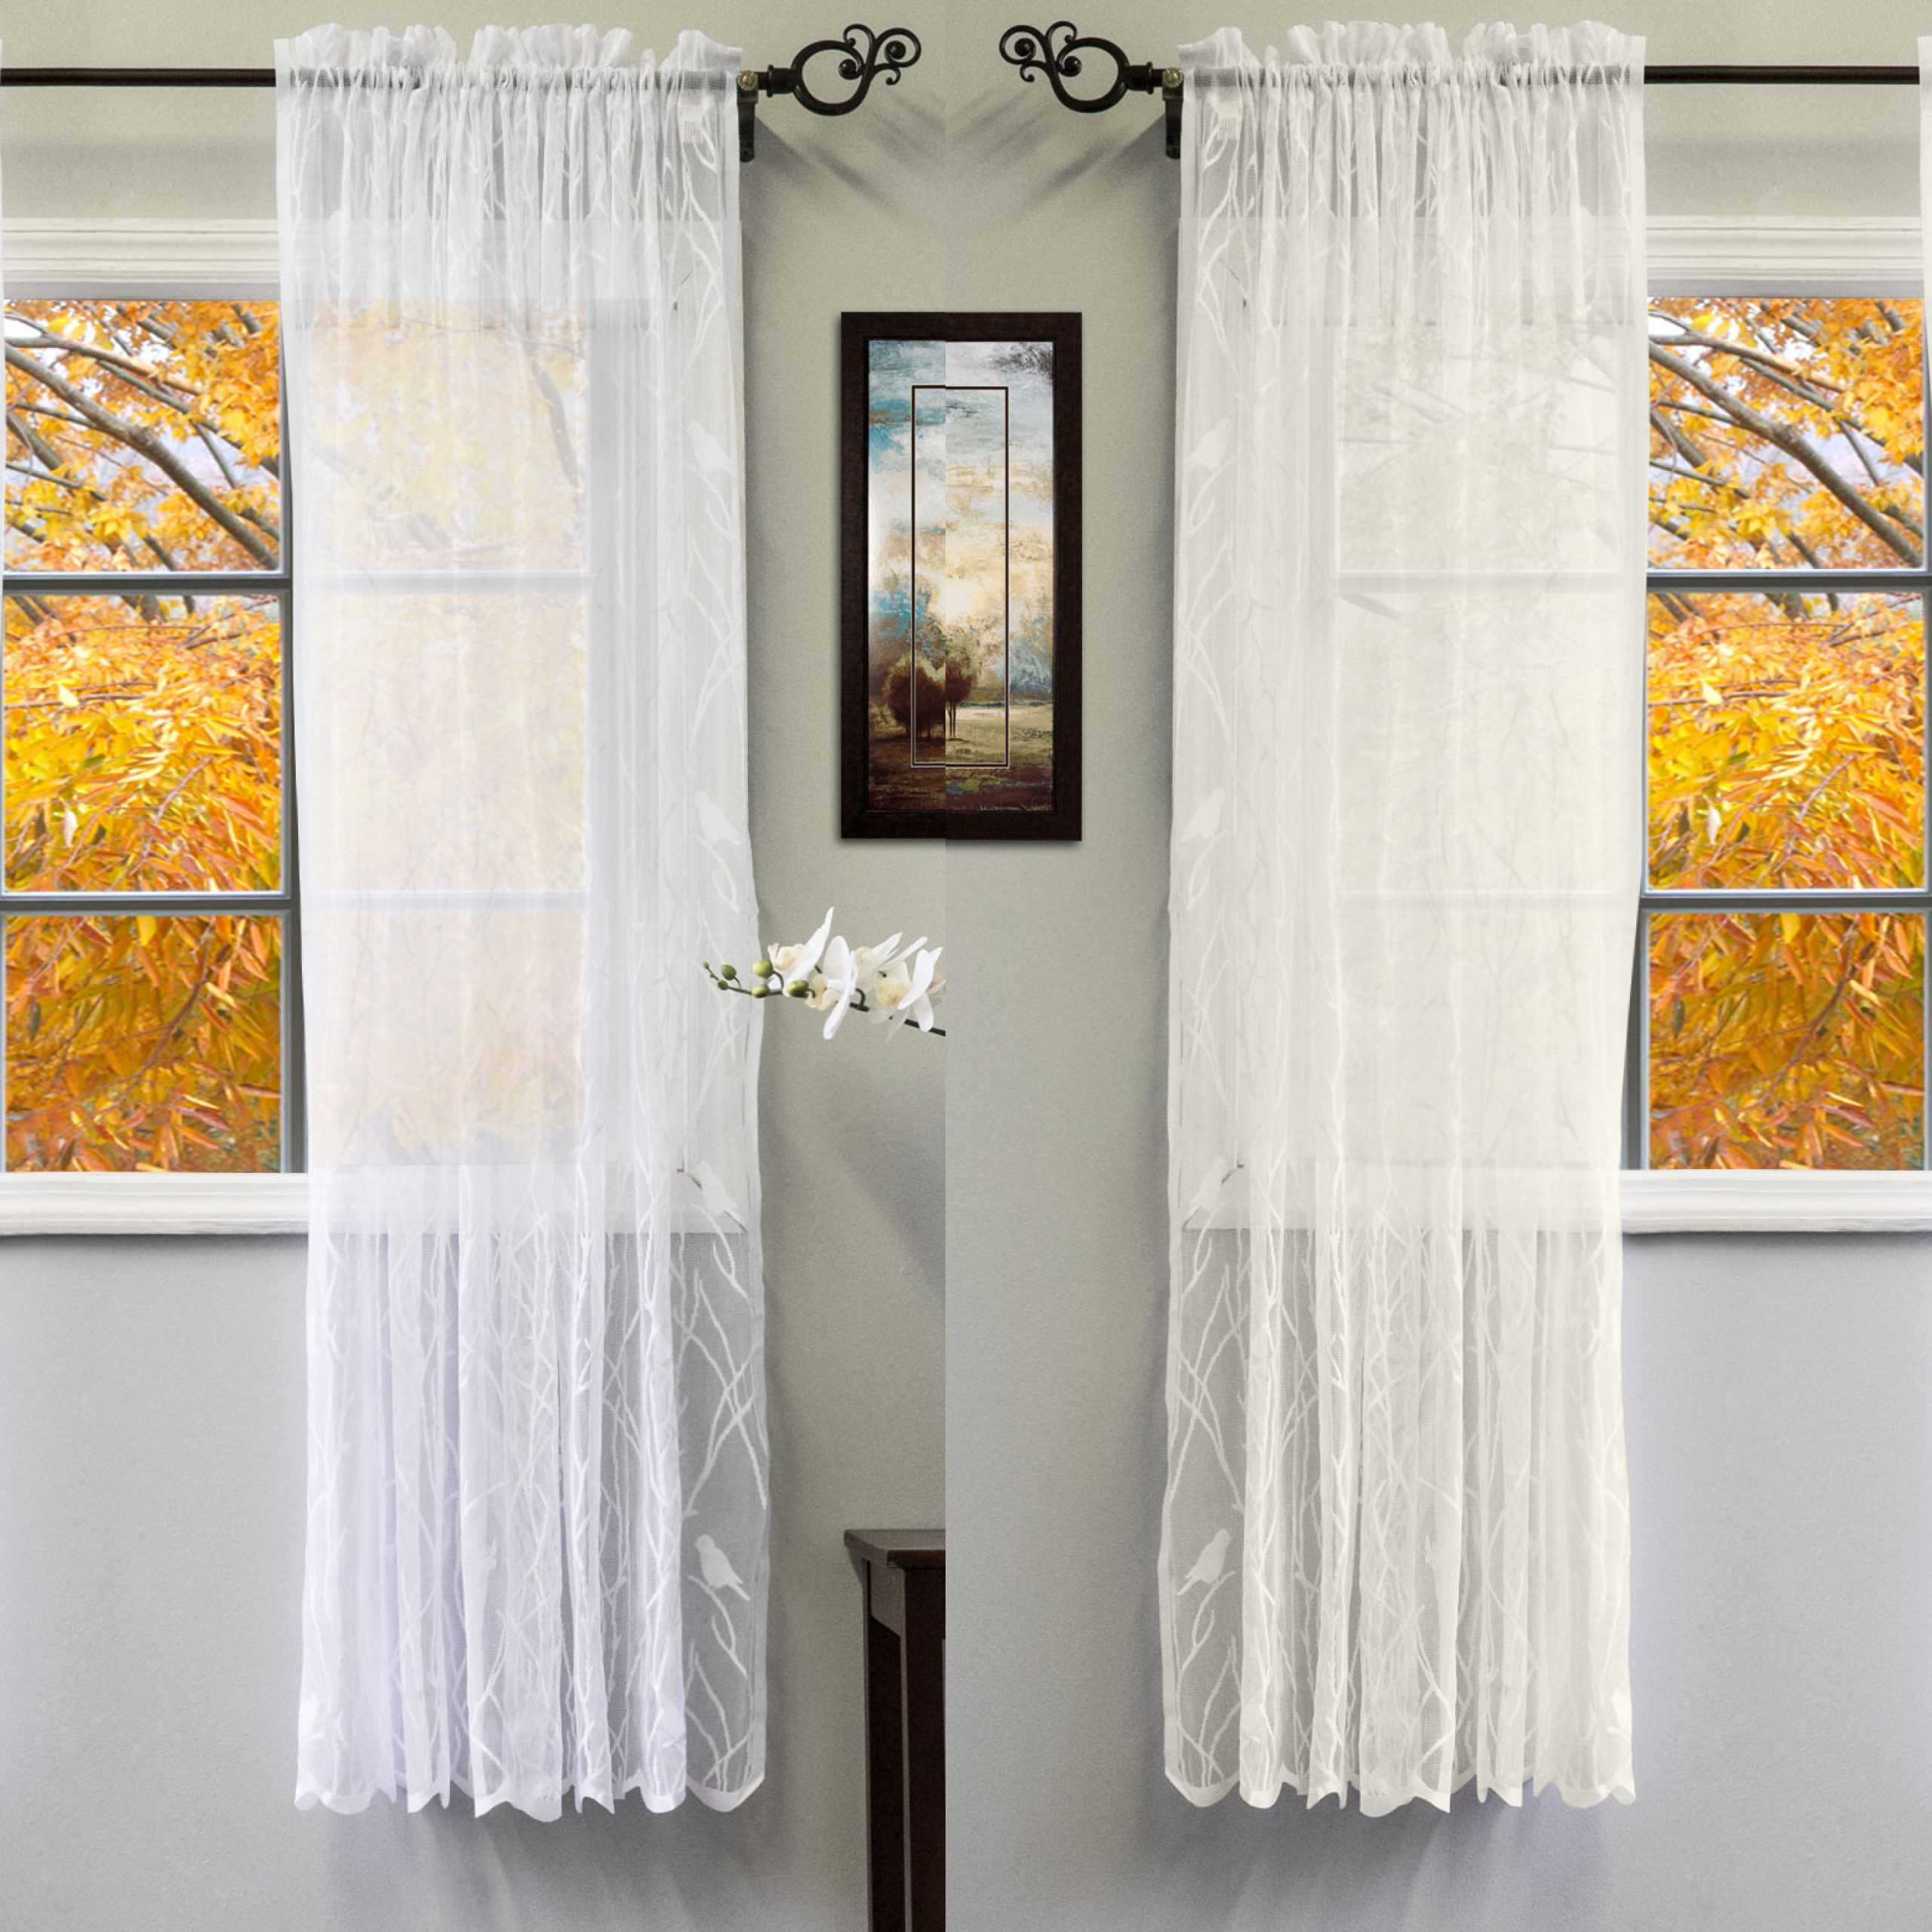 """Fashionable Ivory Knit Lace Bird Motif Window Curtain With Regard To Details About Knit Lace Polyester Songbird Motif 56""""x 63"""" Window Curtain  Panel (Gallery 12 of 20)"""